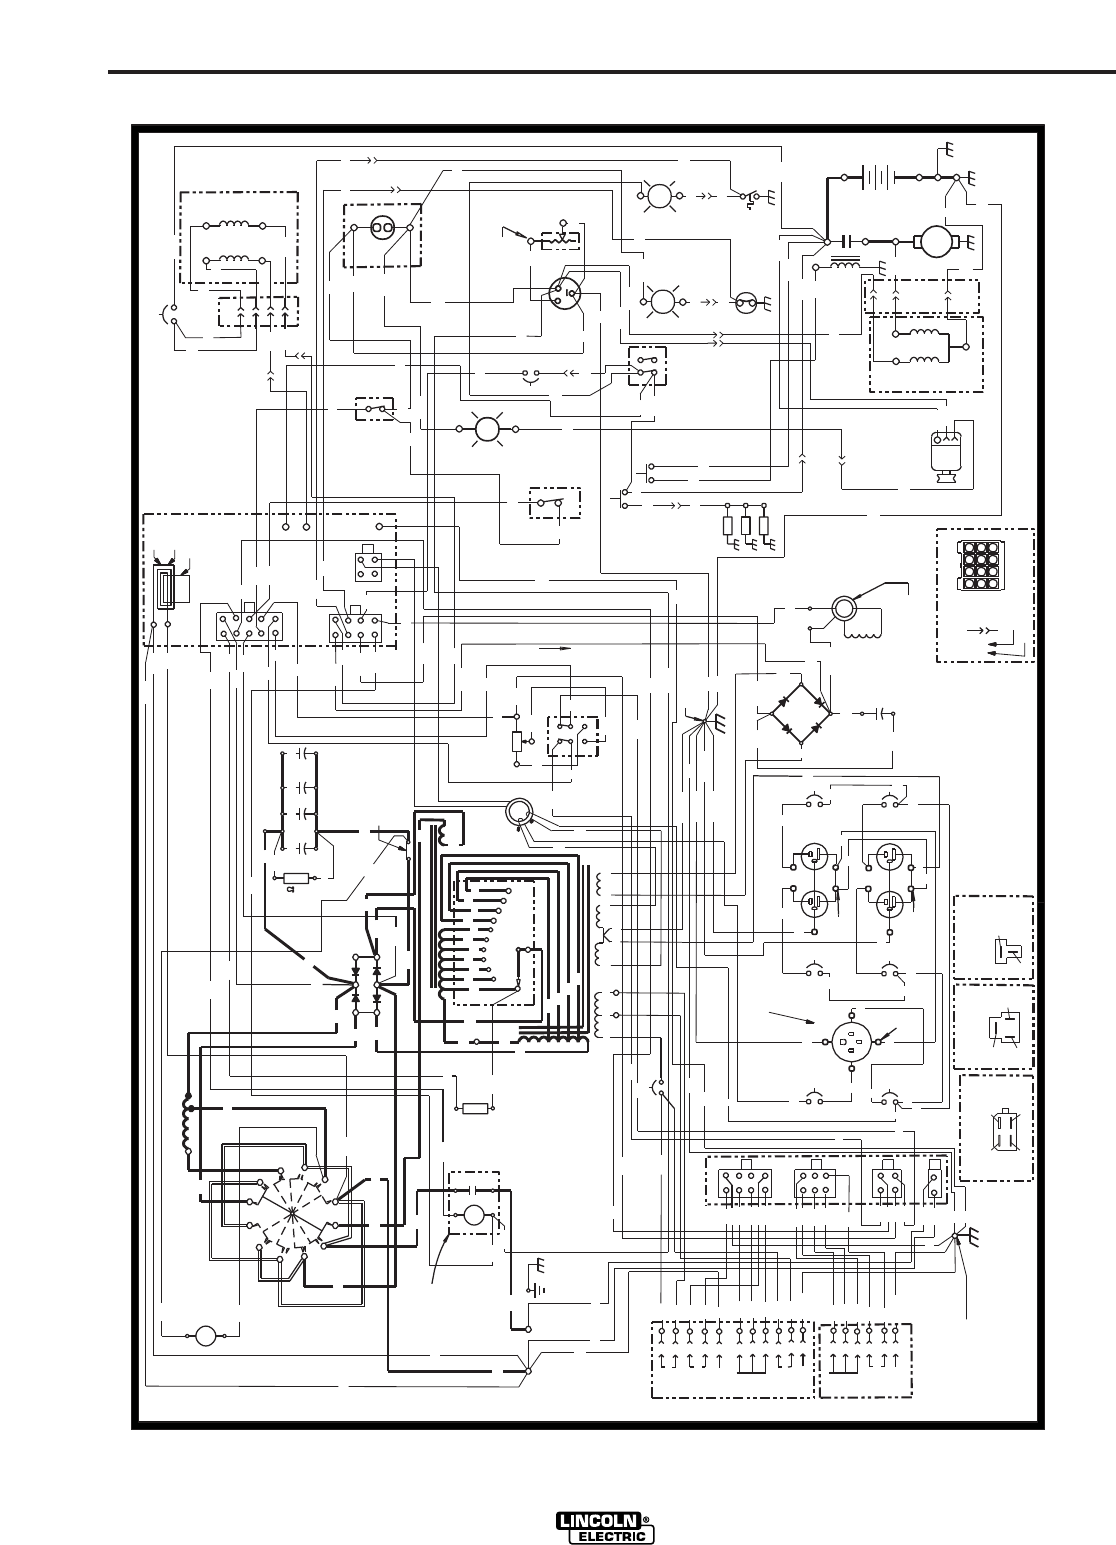 62a1363e f46d 4f39 a86d 13e2b3ea786f bg2f page 47 of lincoln electric welder 300 d user guide lincoln electric wiring diagram at bakdesigns.co